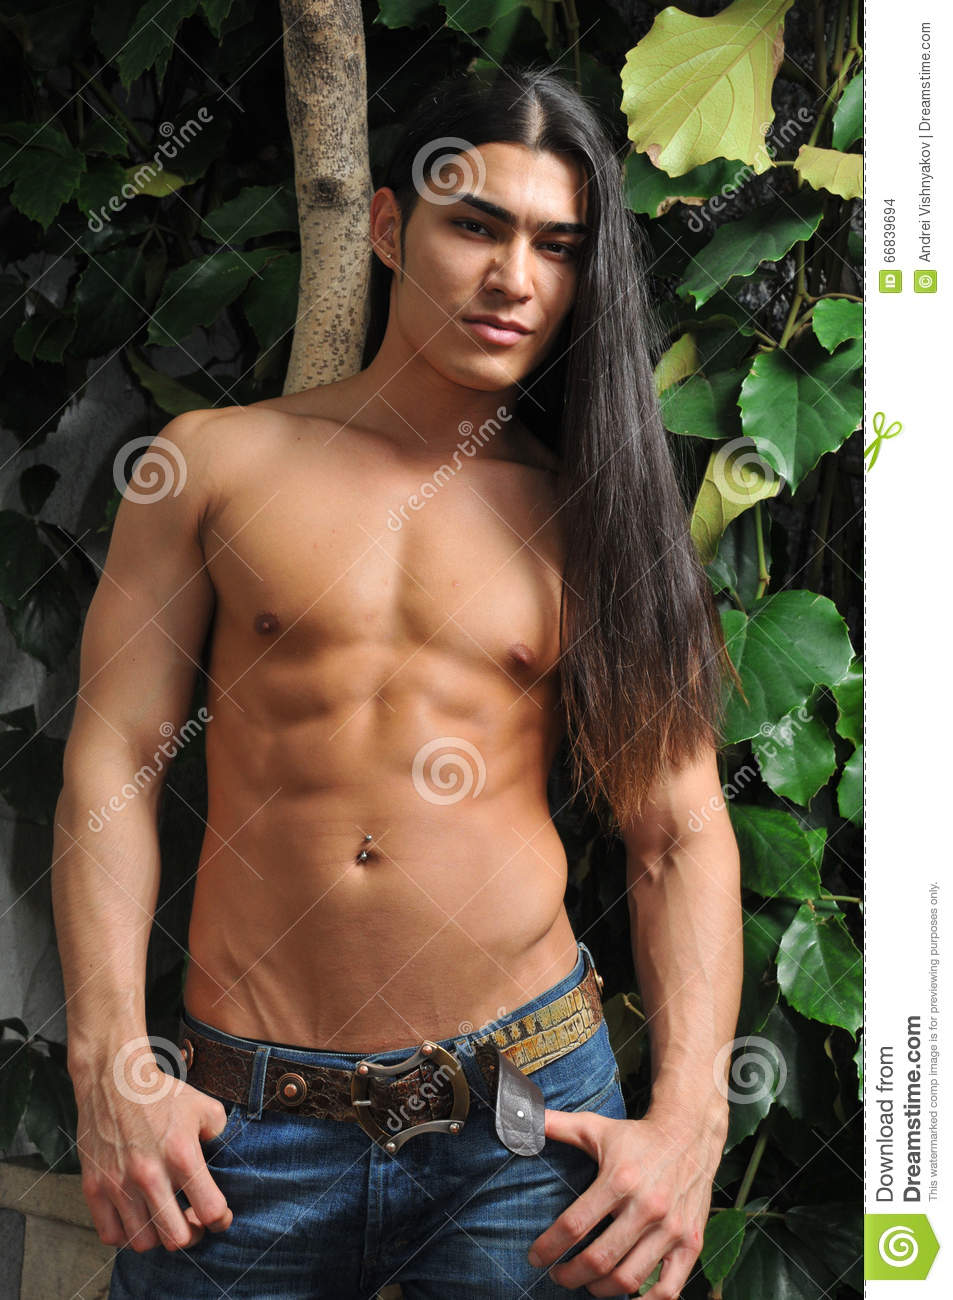 Male Model In Tropical Greenhouse Stock Photo Image Of